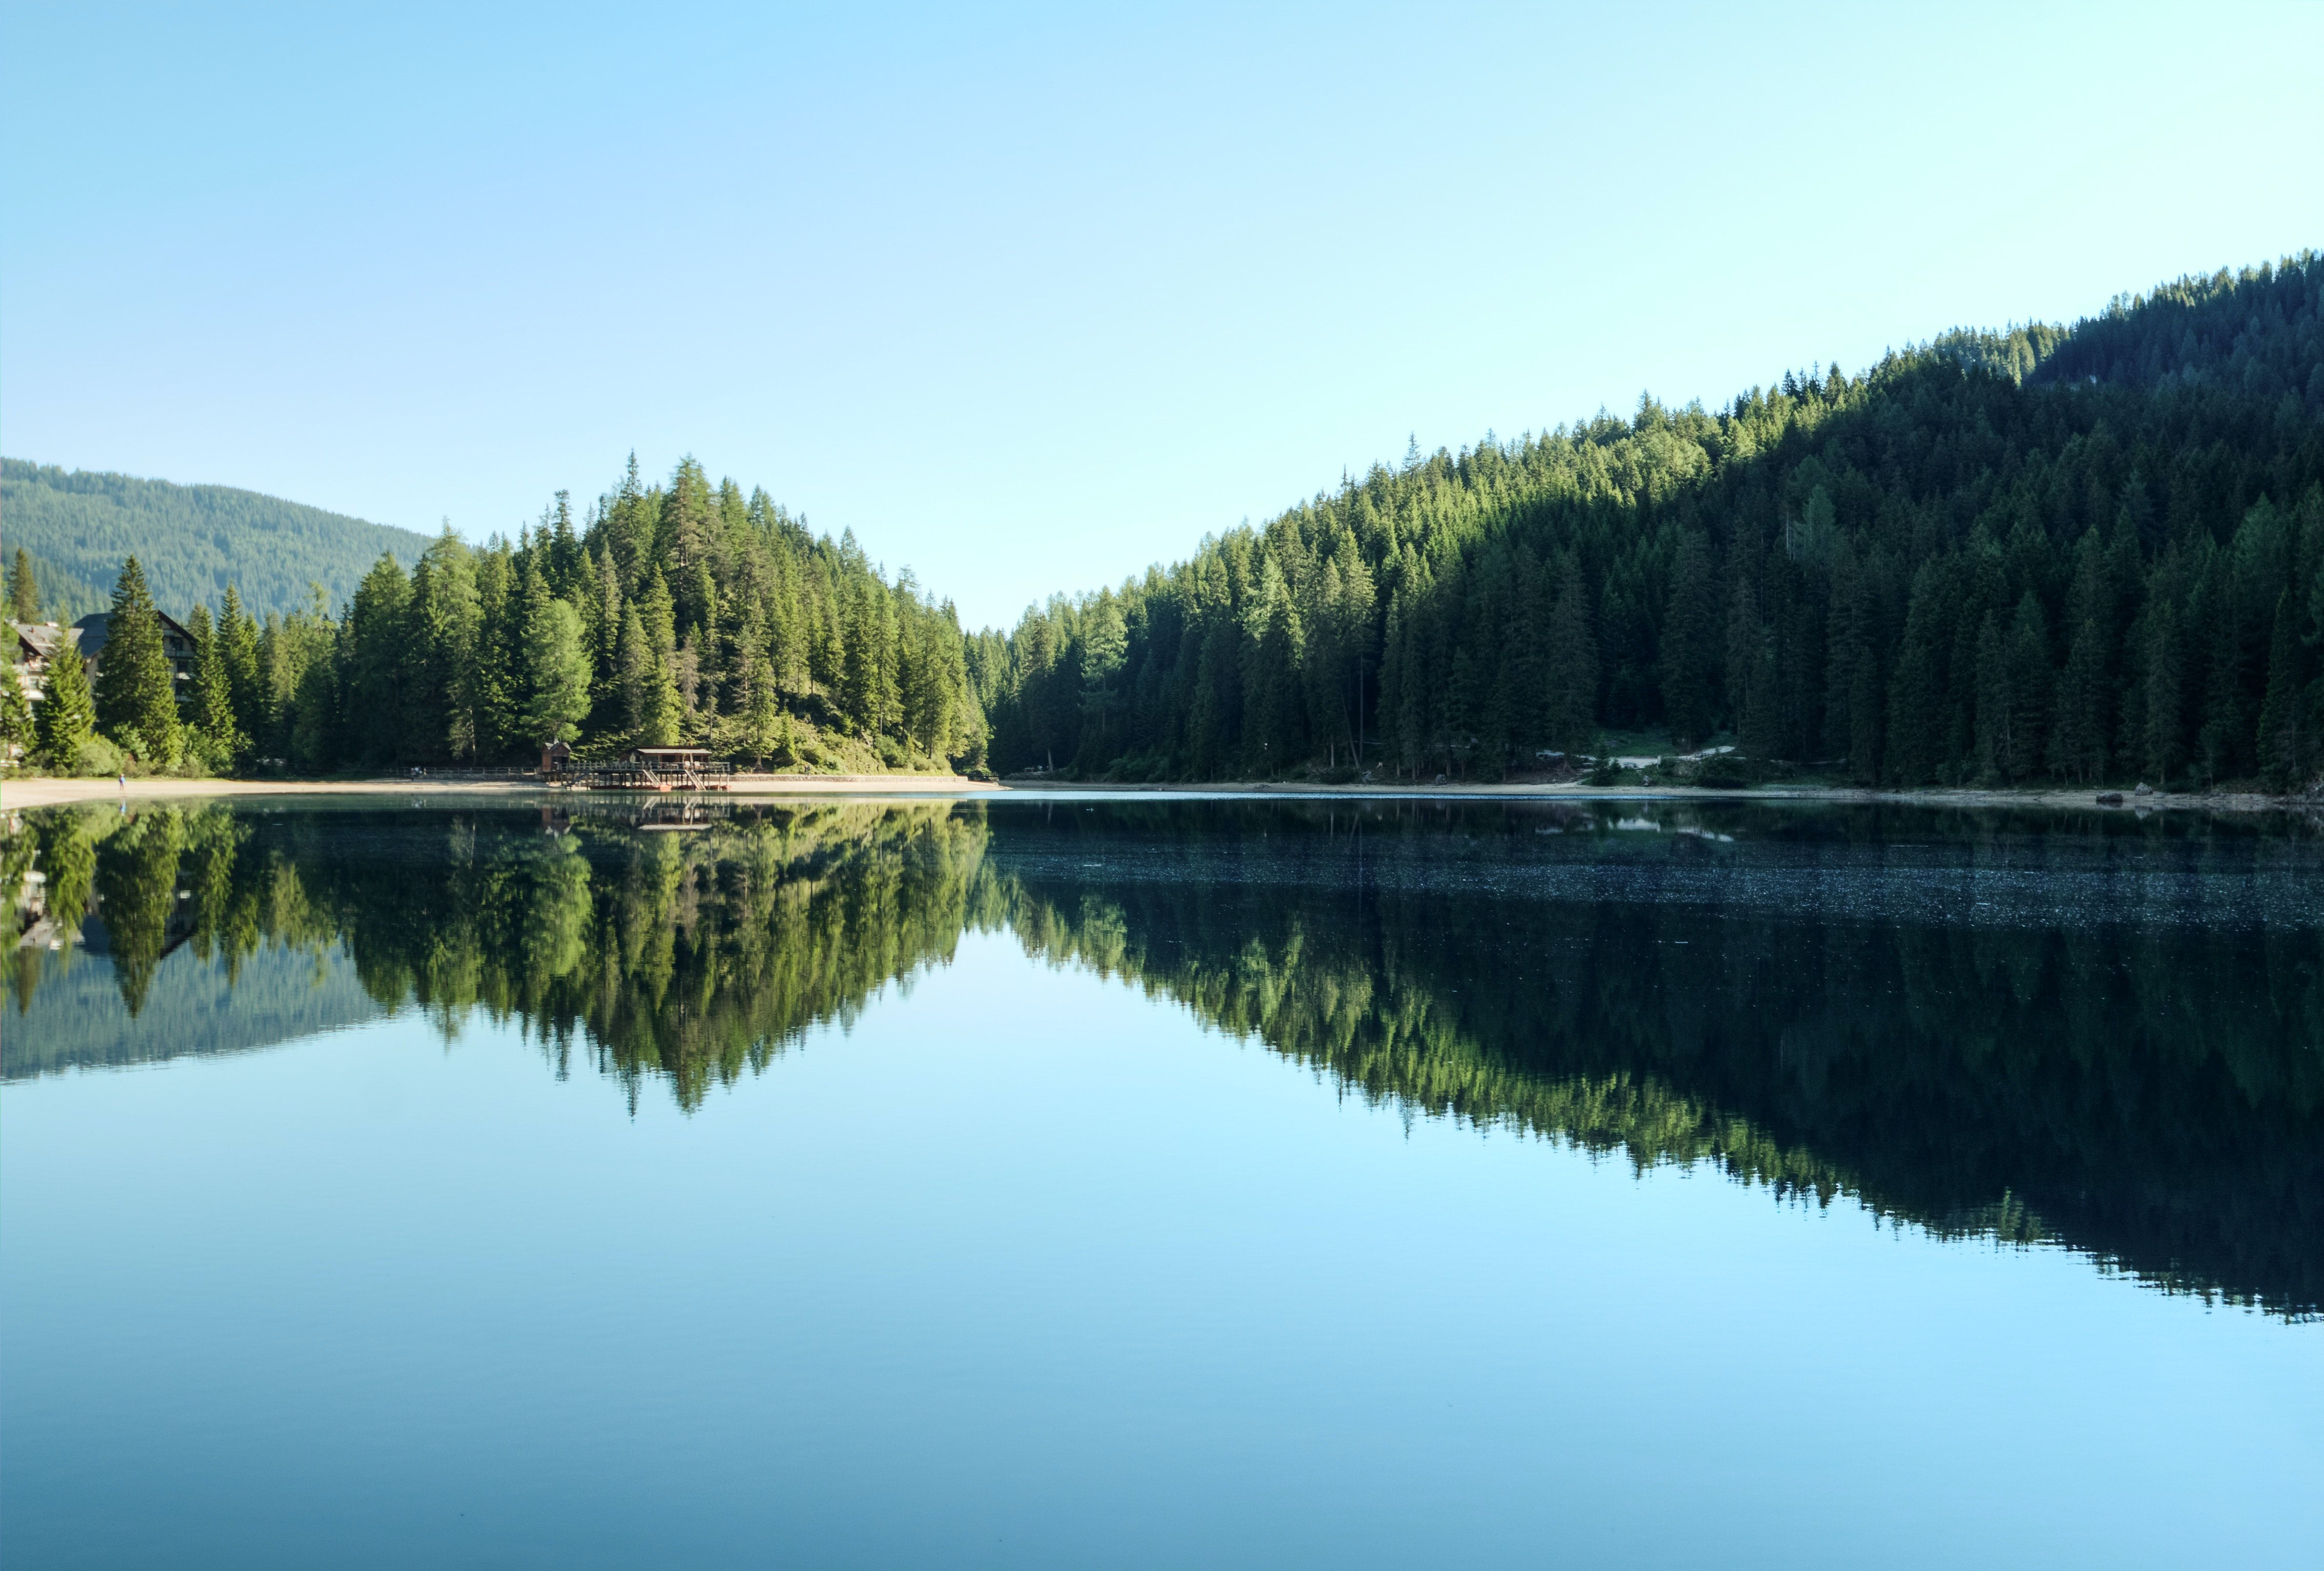 Calm lake lined with trees